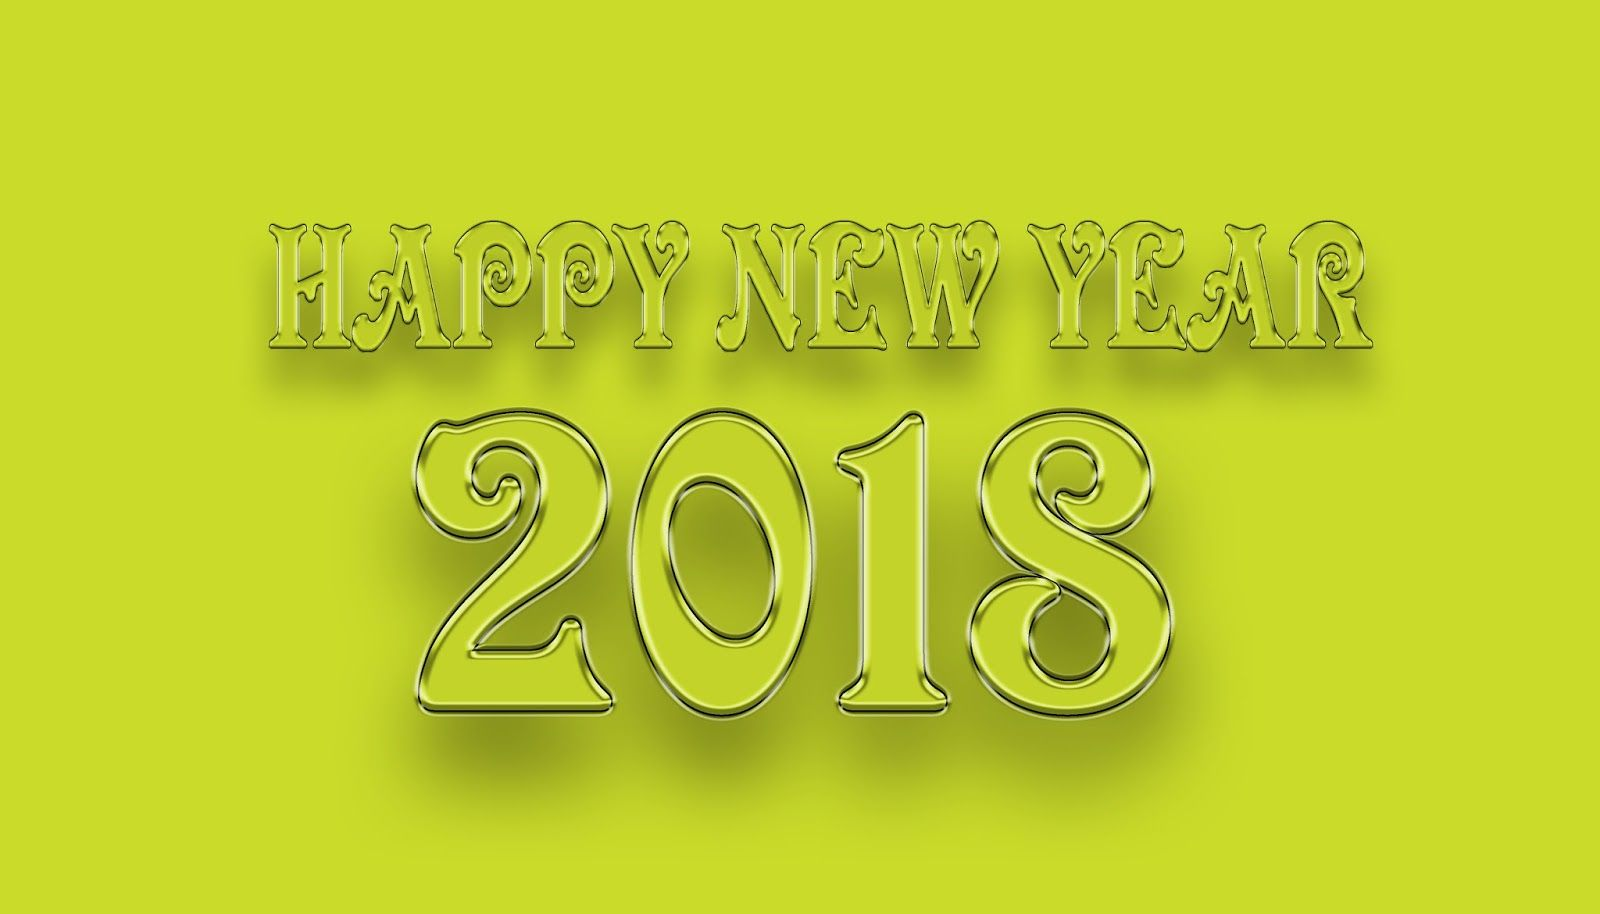 happy new year 2018 wallpaper download from here httphappynewyear2018 quotes